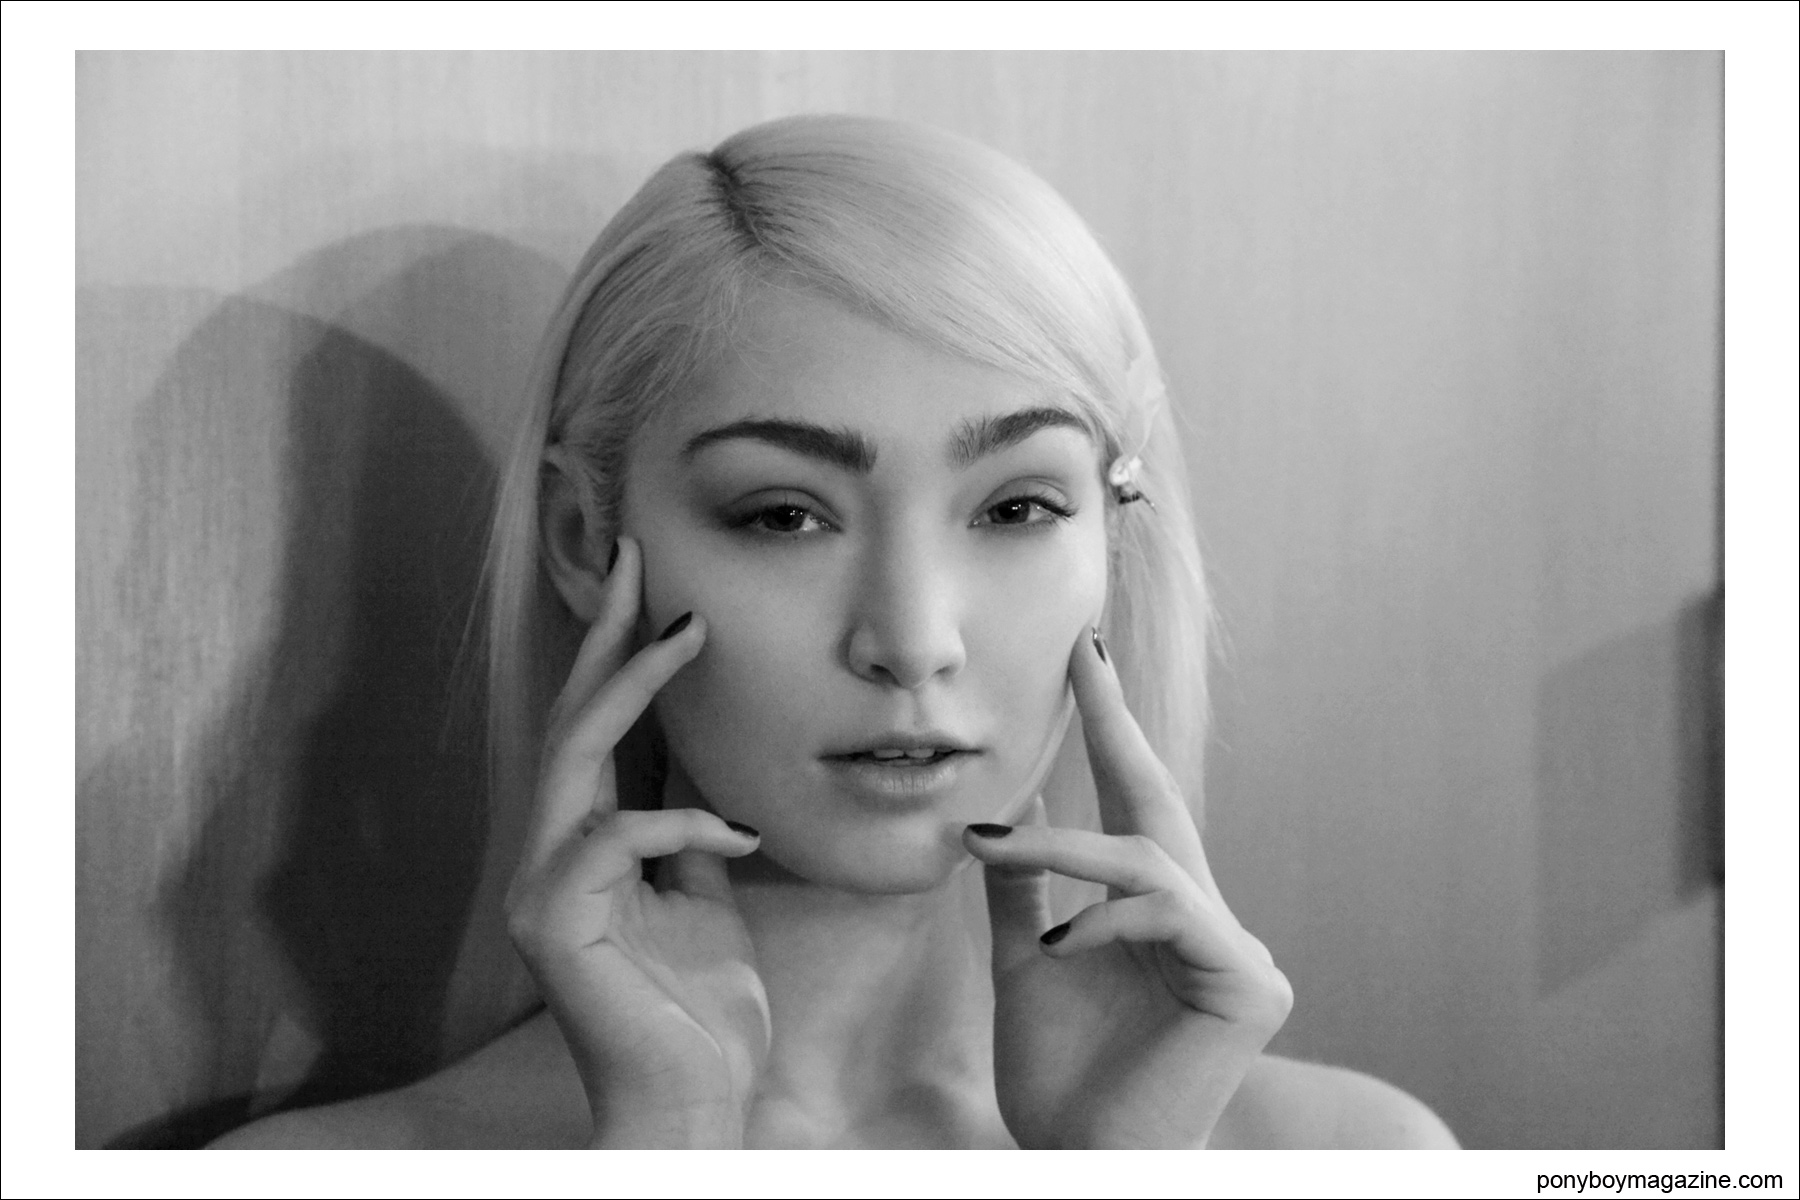 A blonde Asian beauty poses for photographer Alexander Thompson, backstage at the Timo Weiland A/W 2014 Collection at Milk Studiosin New York city, for Ponyboy Magazine.